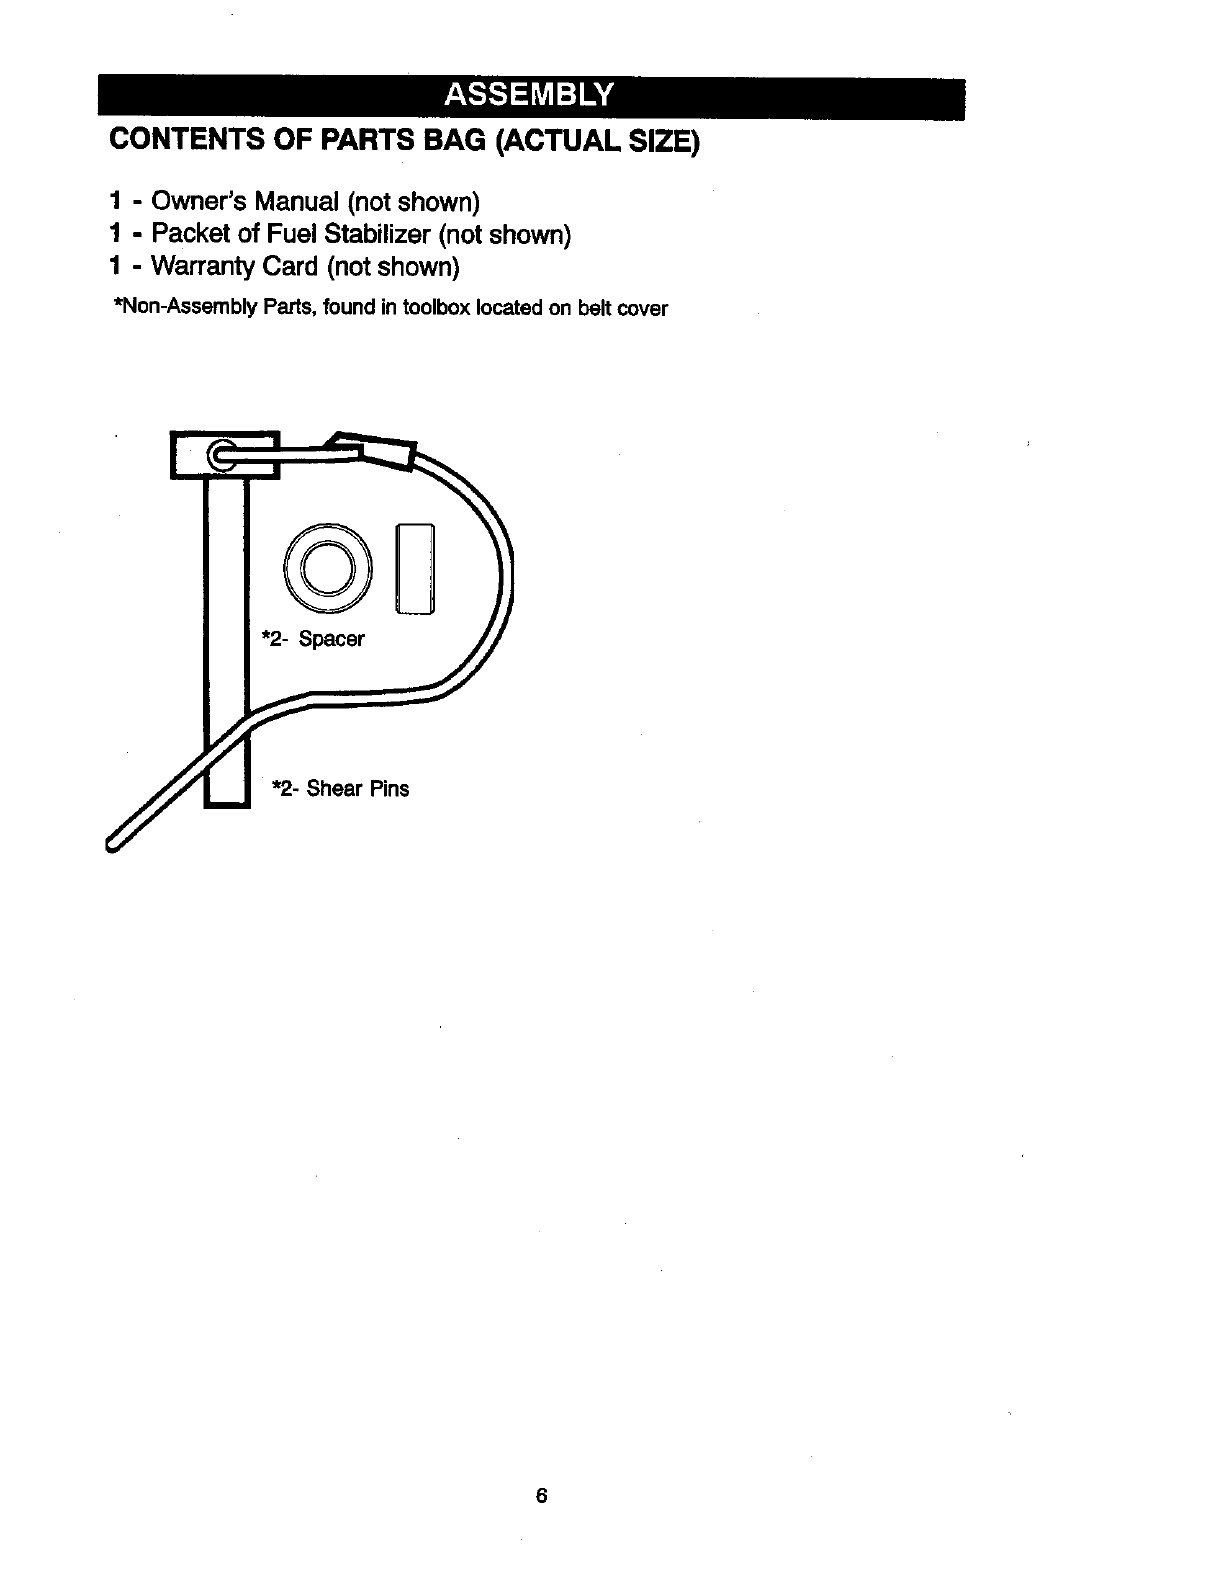 Page 6 of Craftsman Snow Blower 536881851 User Guide